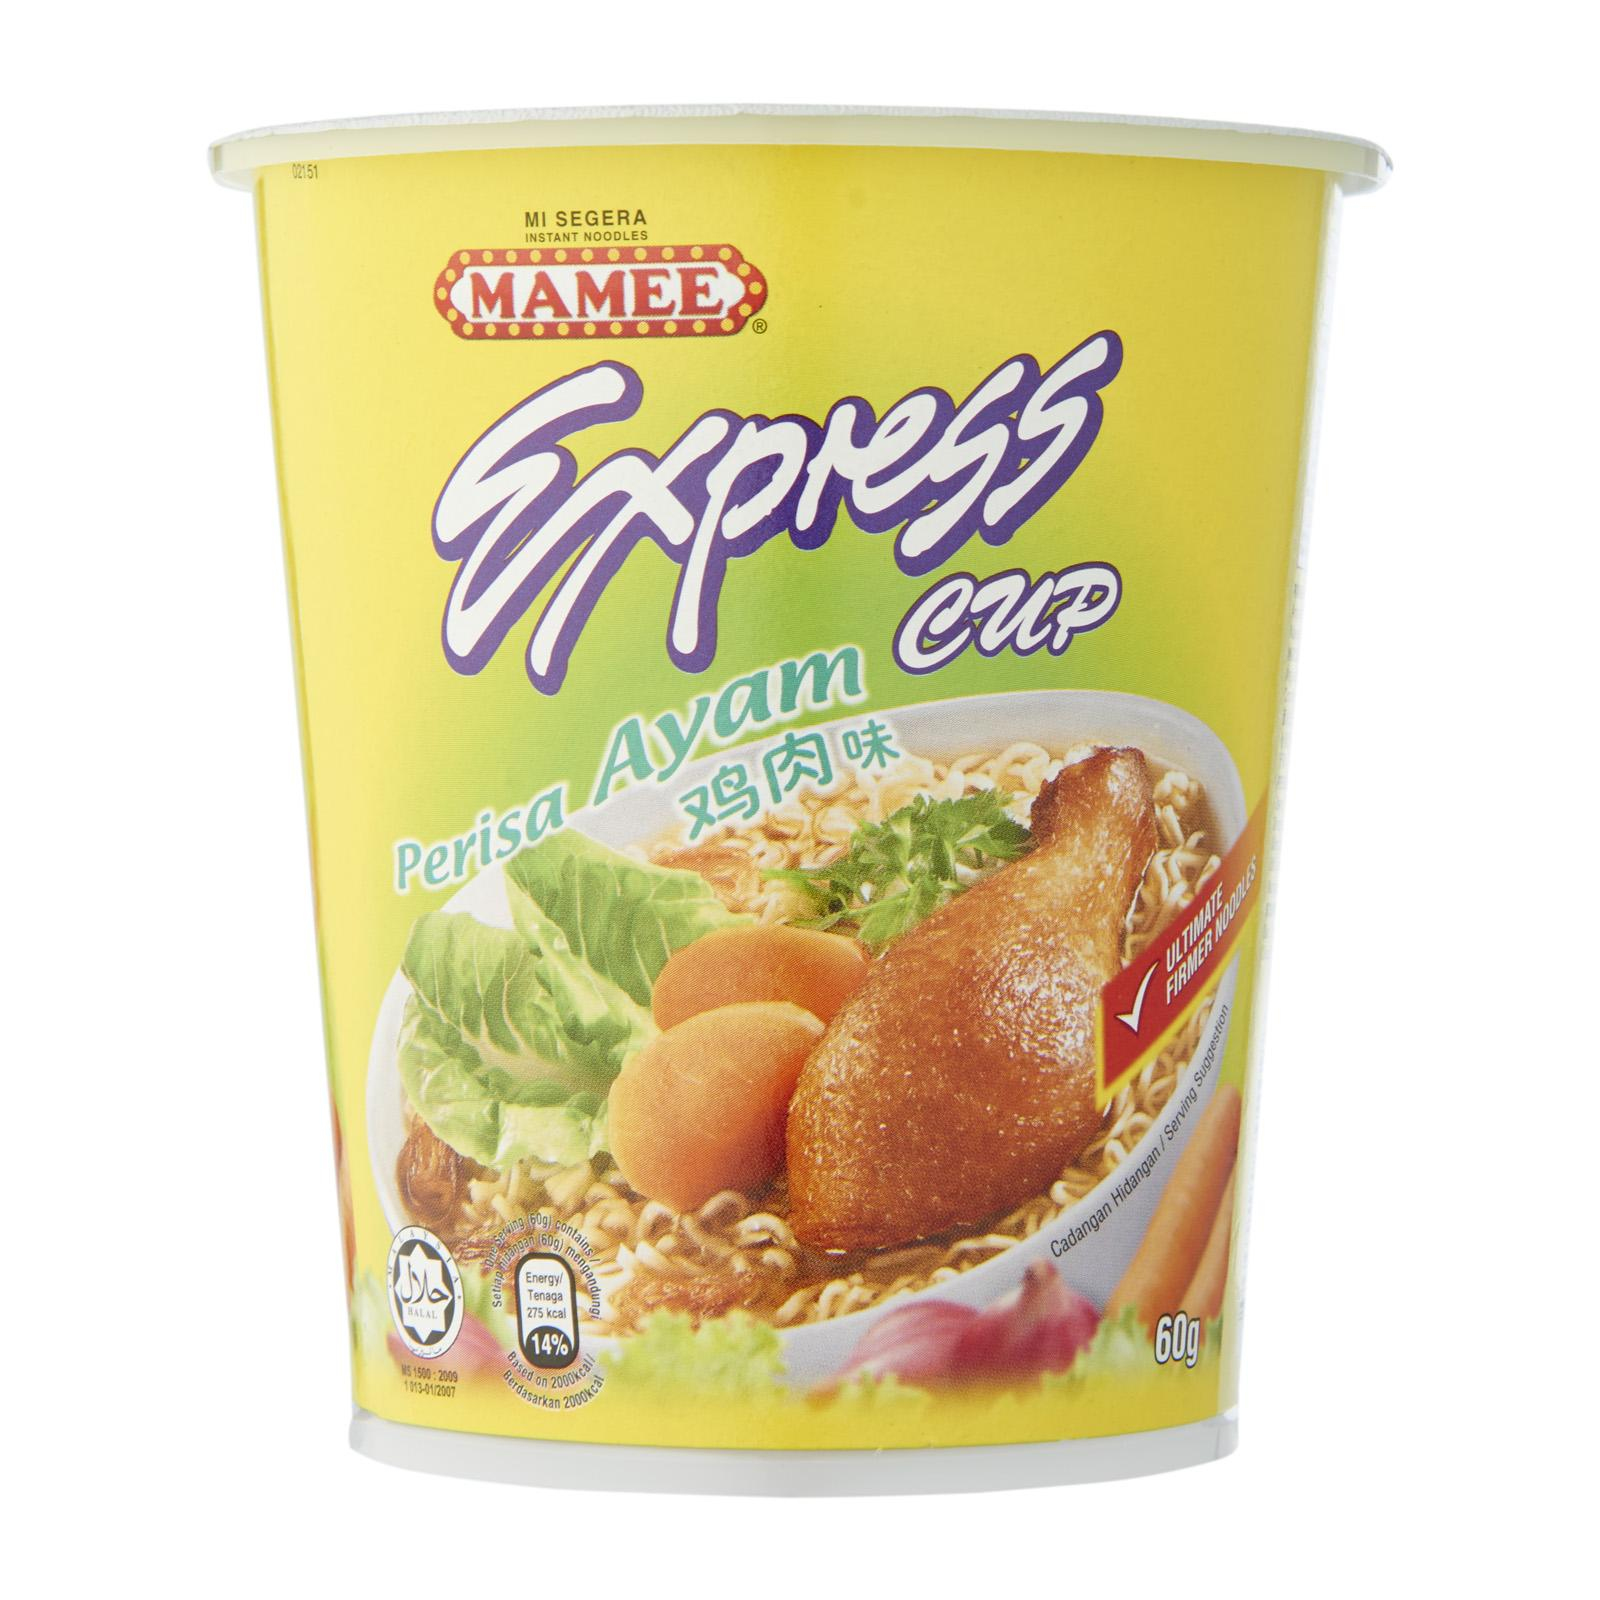 MAMEE Cup Noodles - Chicken 60g